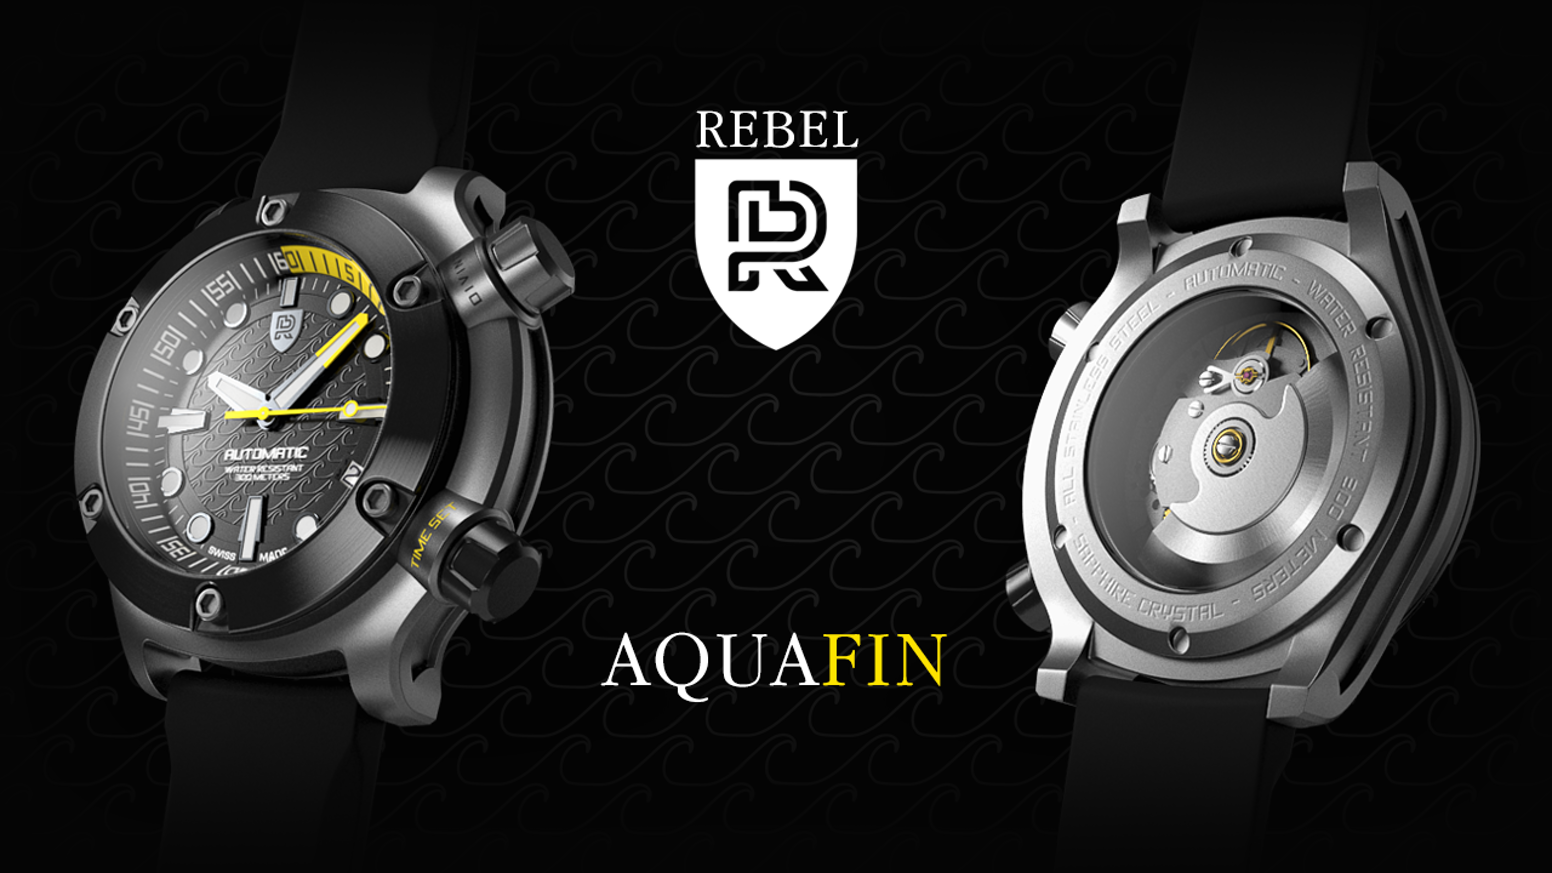 AQUAFIN. A SWISS MADE Automatic Dive Watch. Hand Assembled. LIMITED EDITION. 3 Year International Warranty.